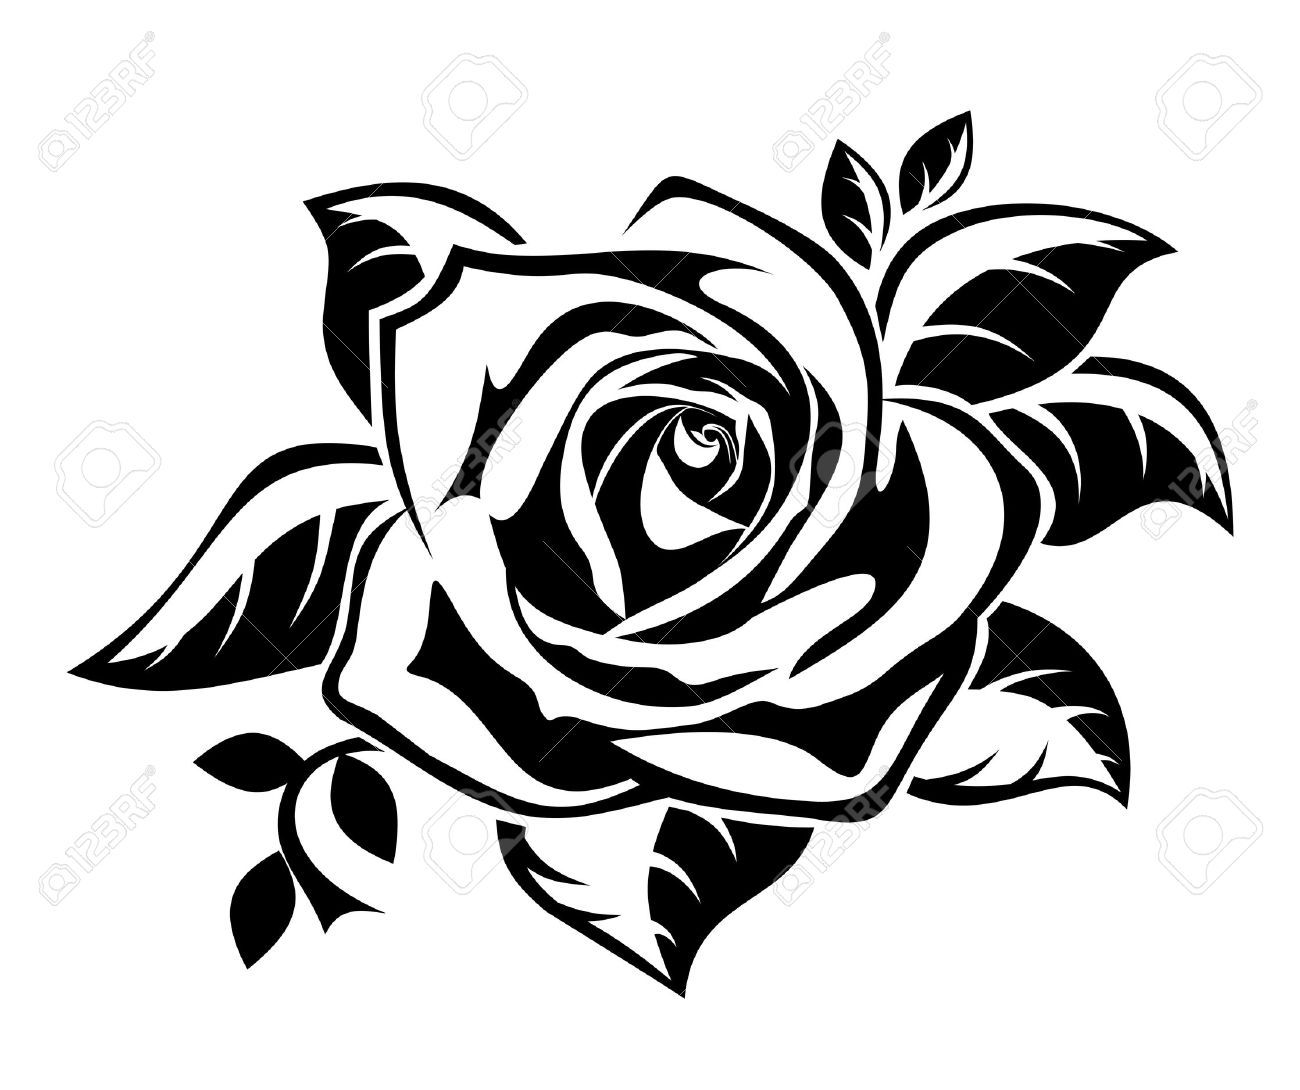 clipart roses black and white - photo #32